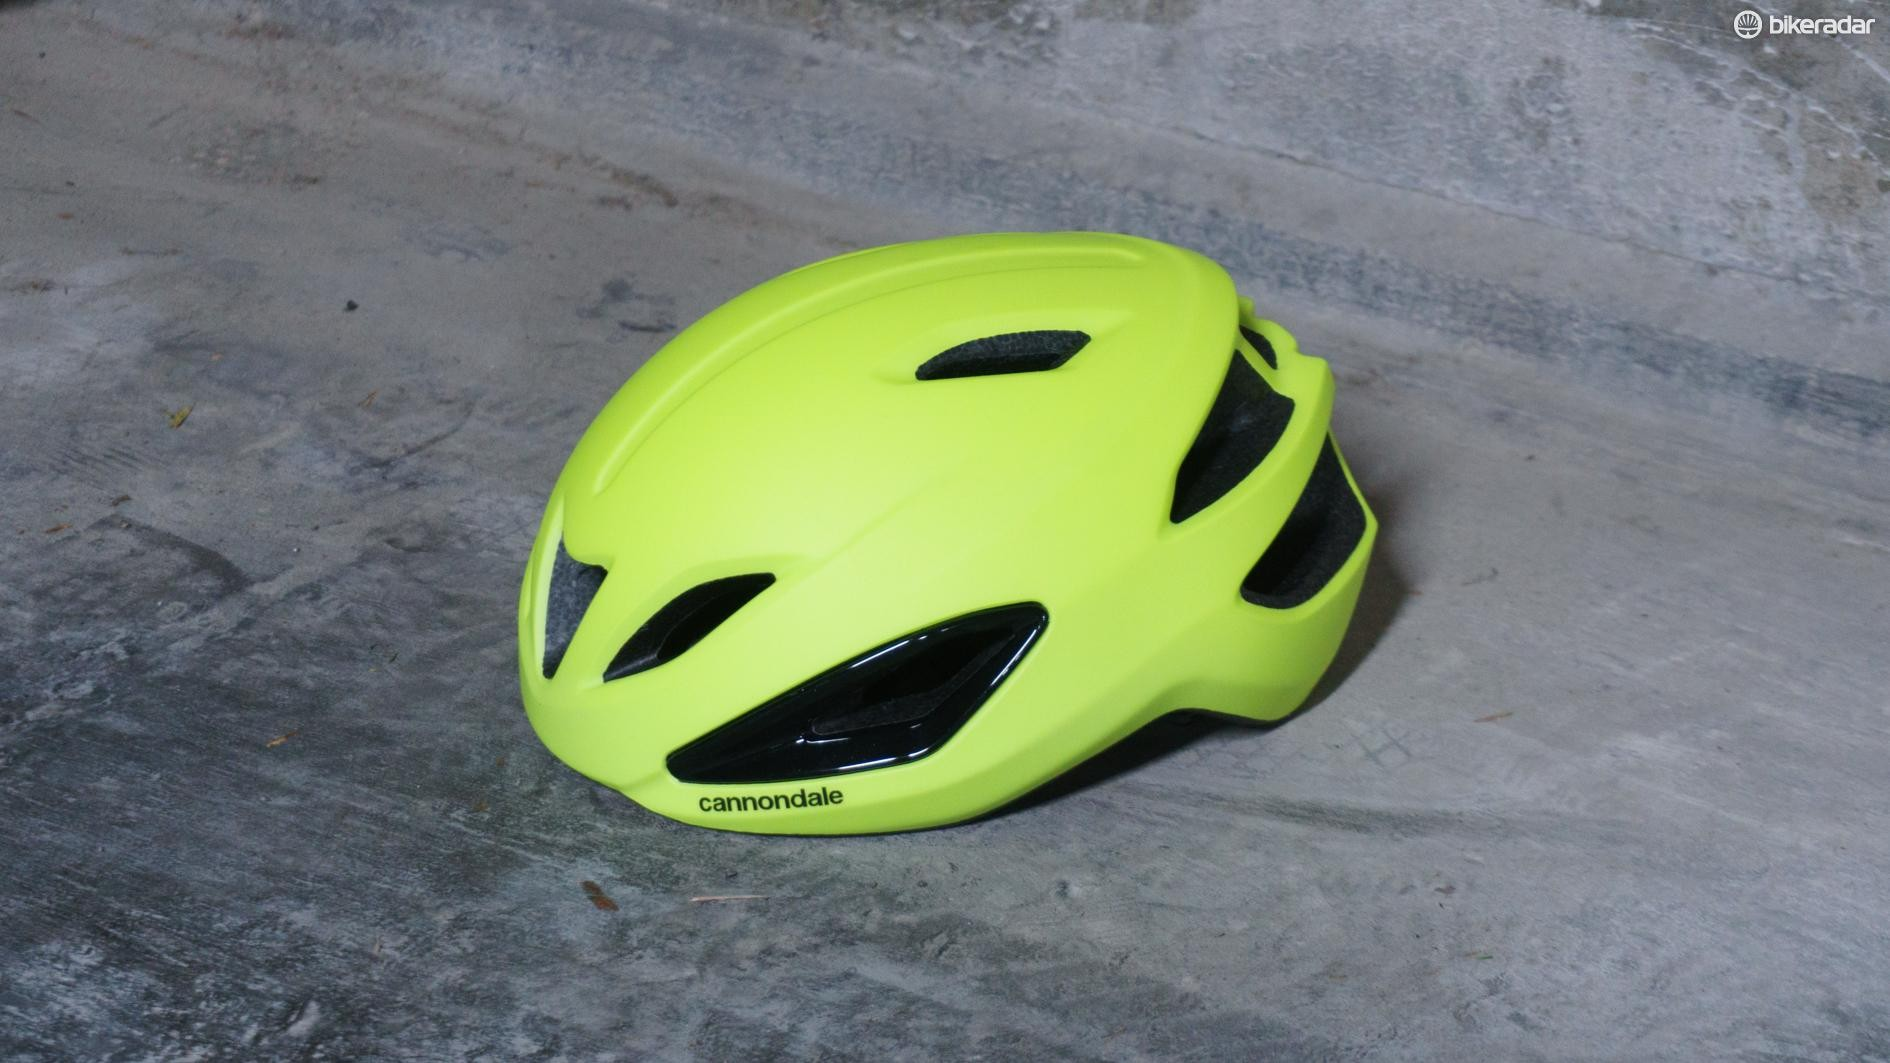 The Intake is available in a bright hi-vis yellow or a more stealthy black